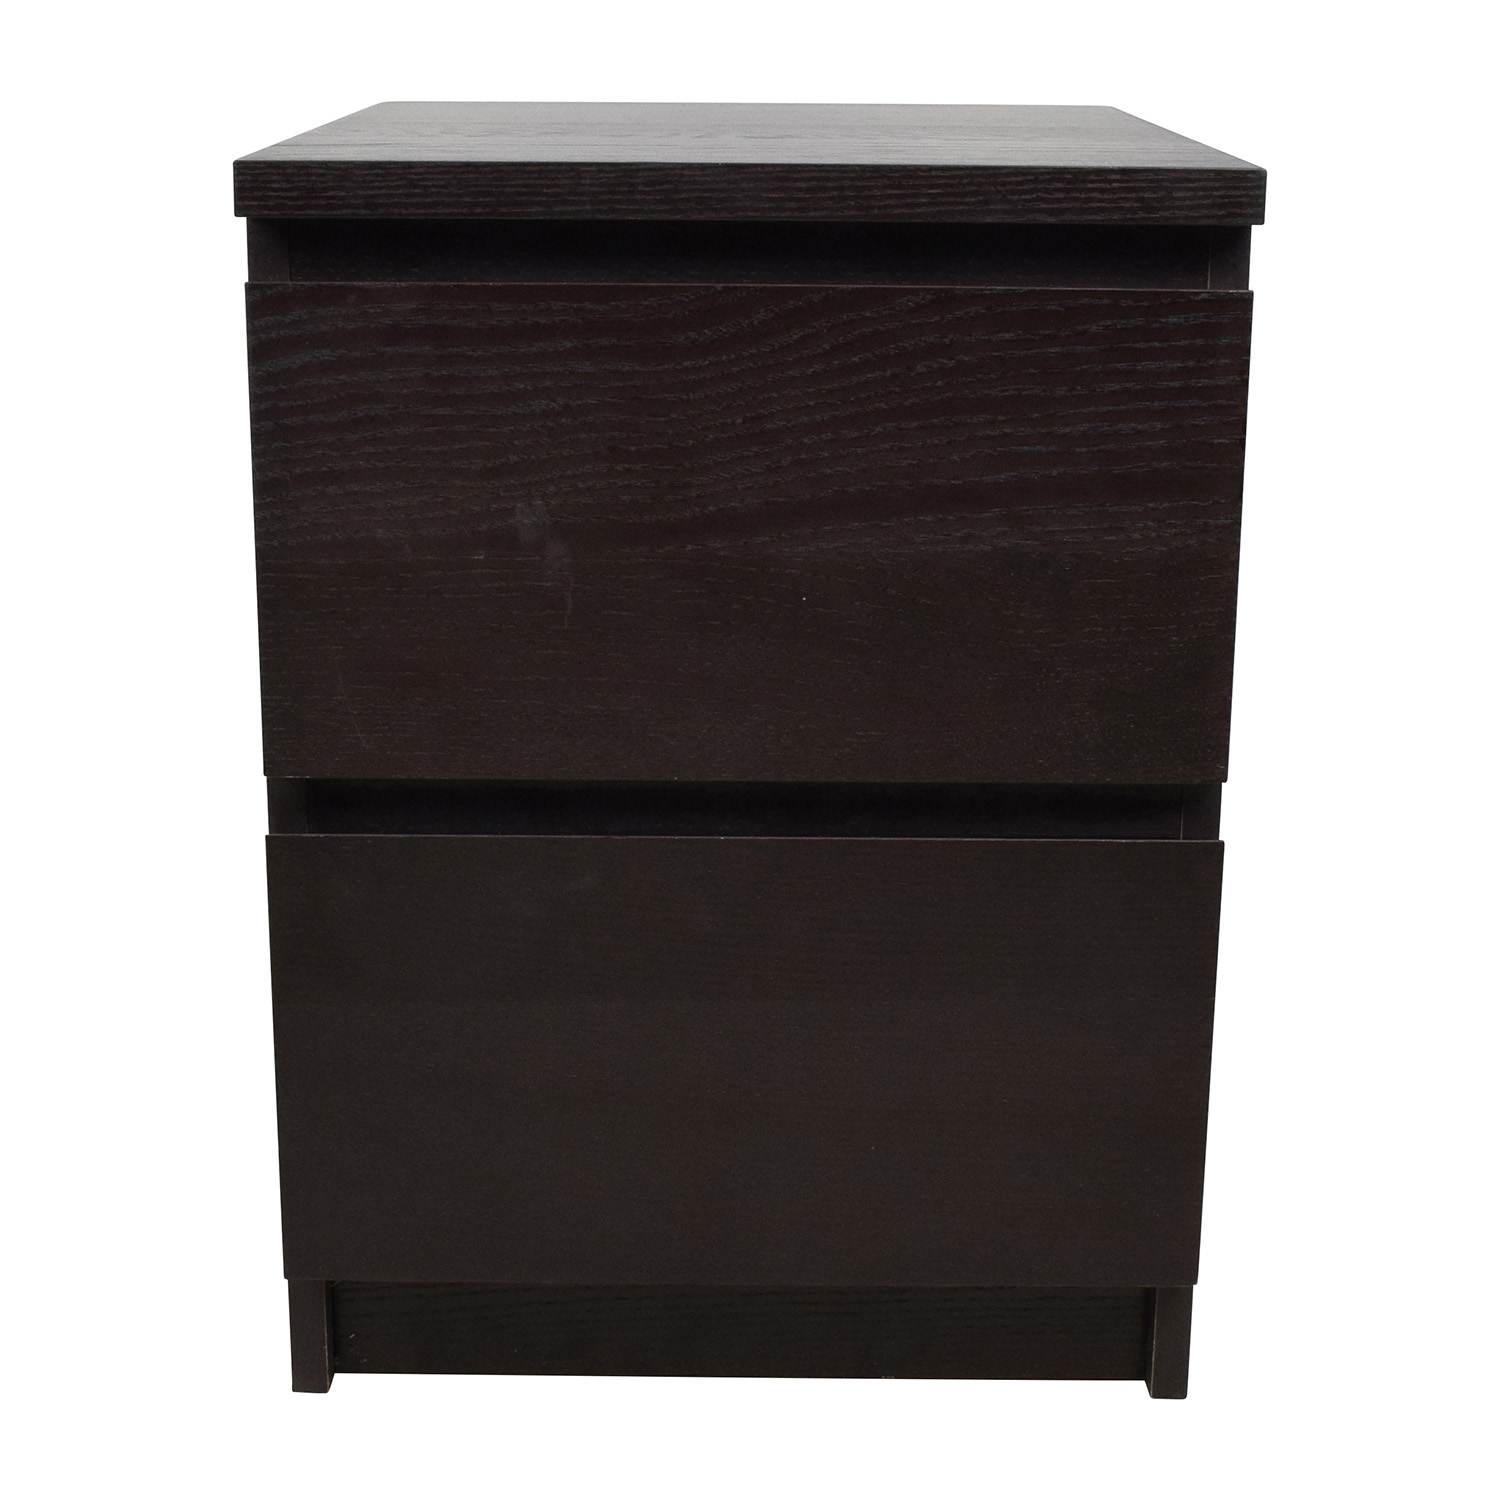 Old Ikea Nightstands IKEA Malm Black Two Drawer Nightstand sale